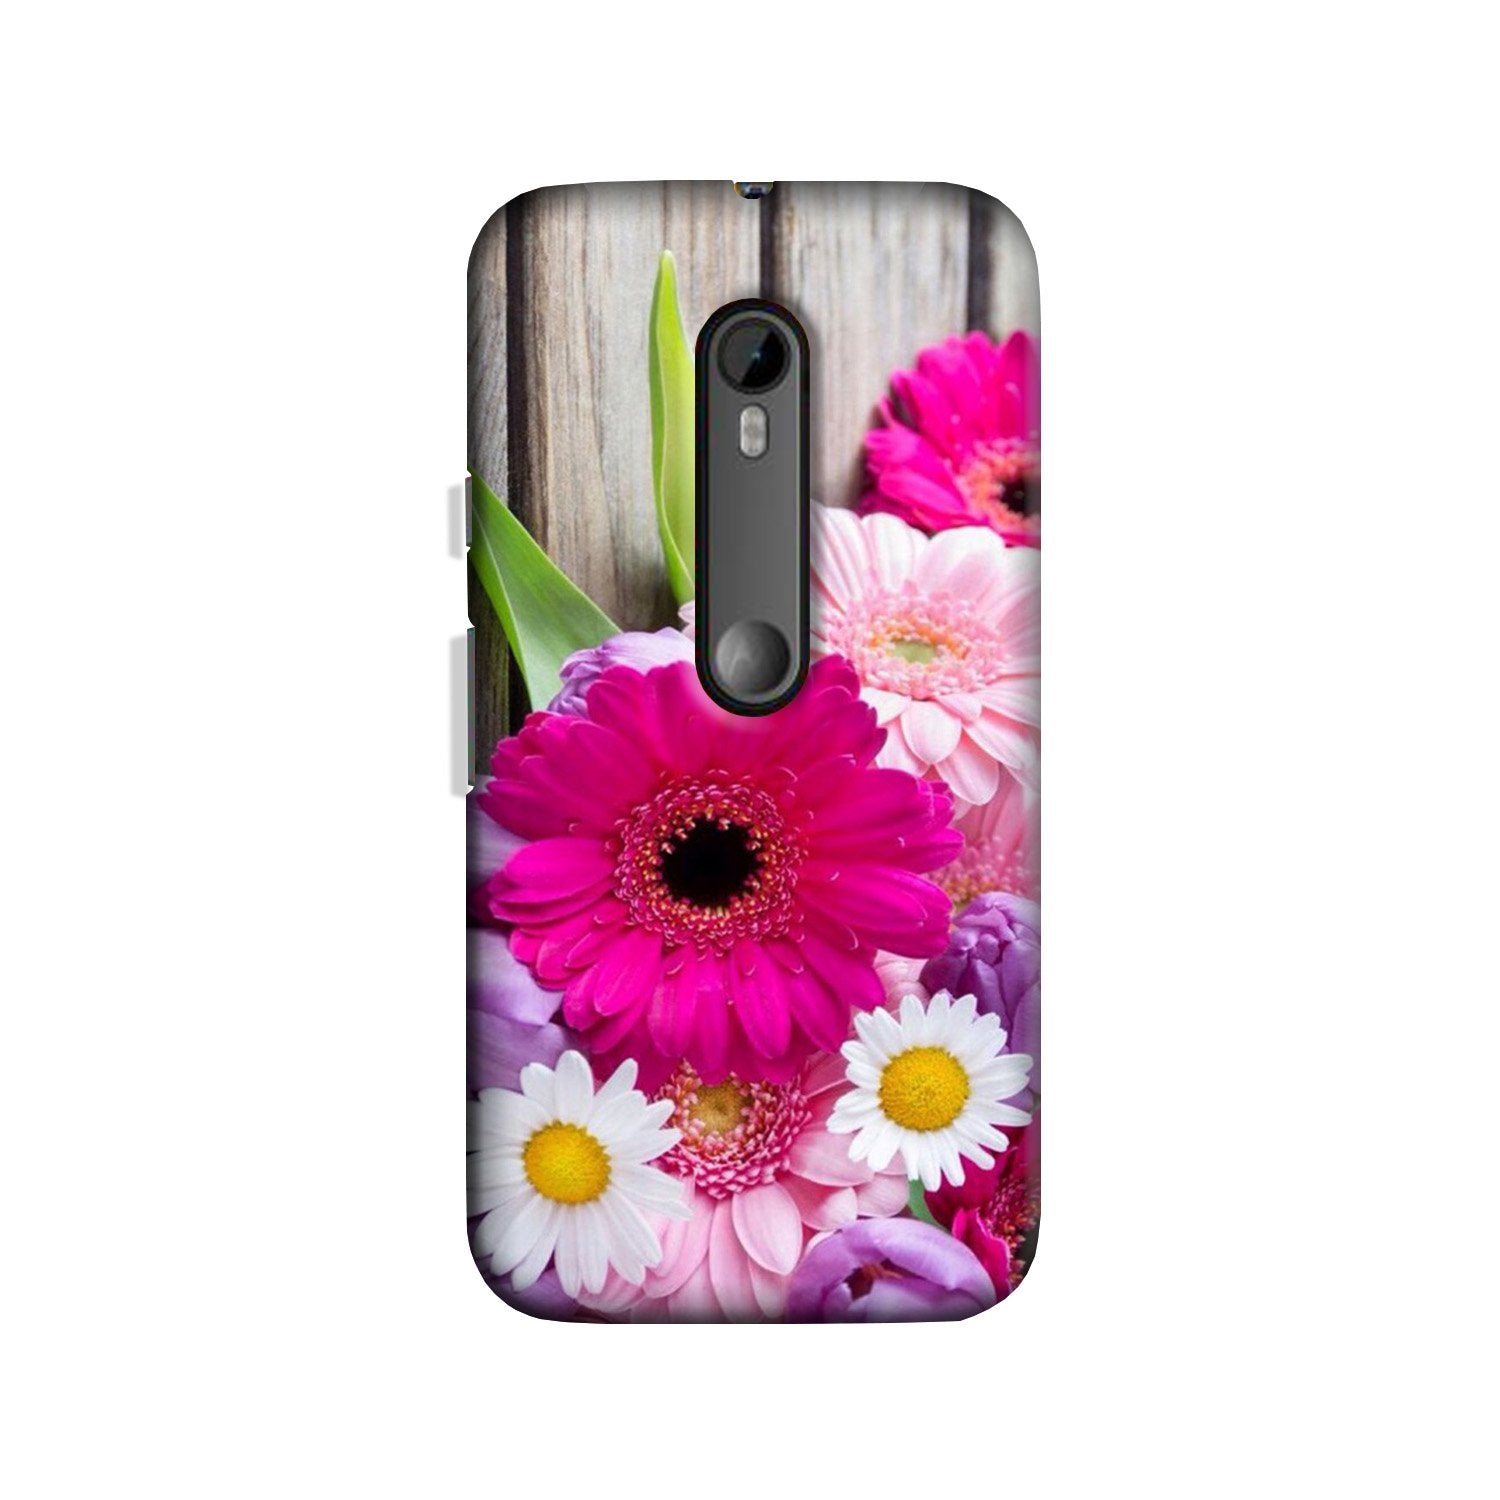 Coloful Daisy Case for Moto G 3rd Gen